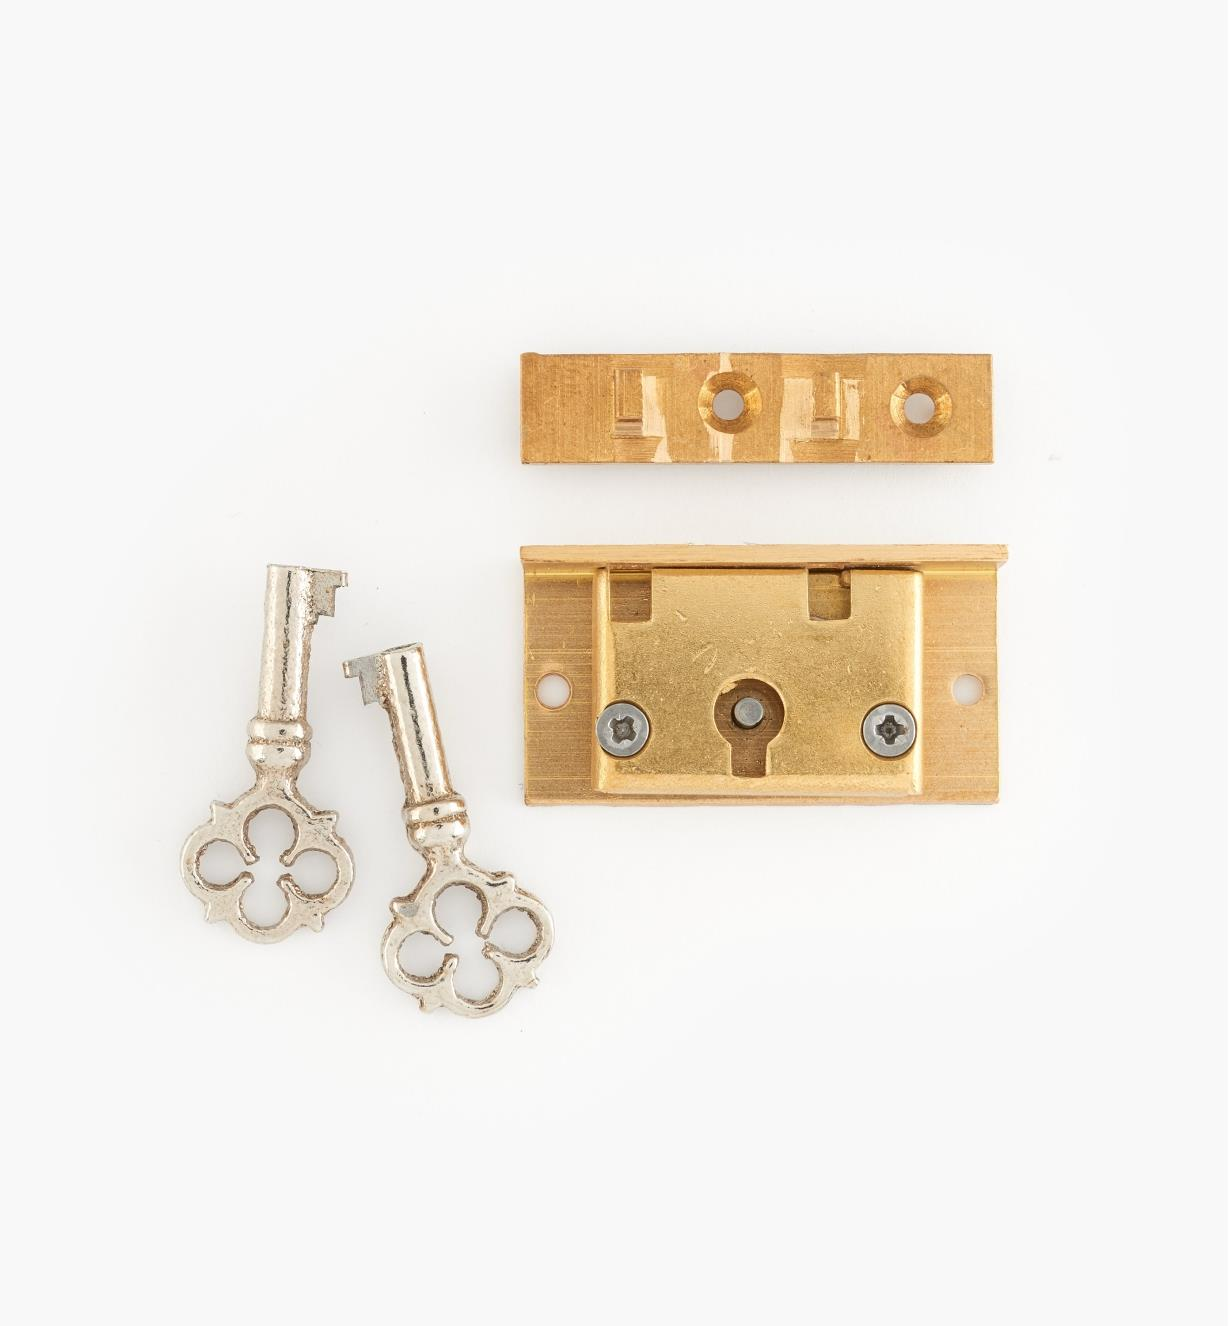 "00R0401 - 1 1/2"" Jewellery-Box Lock"